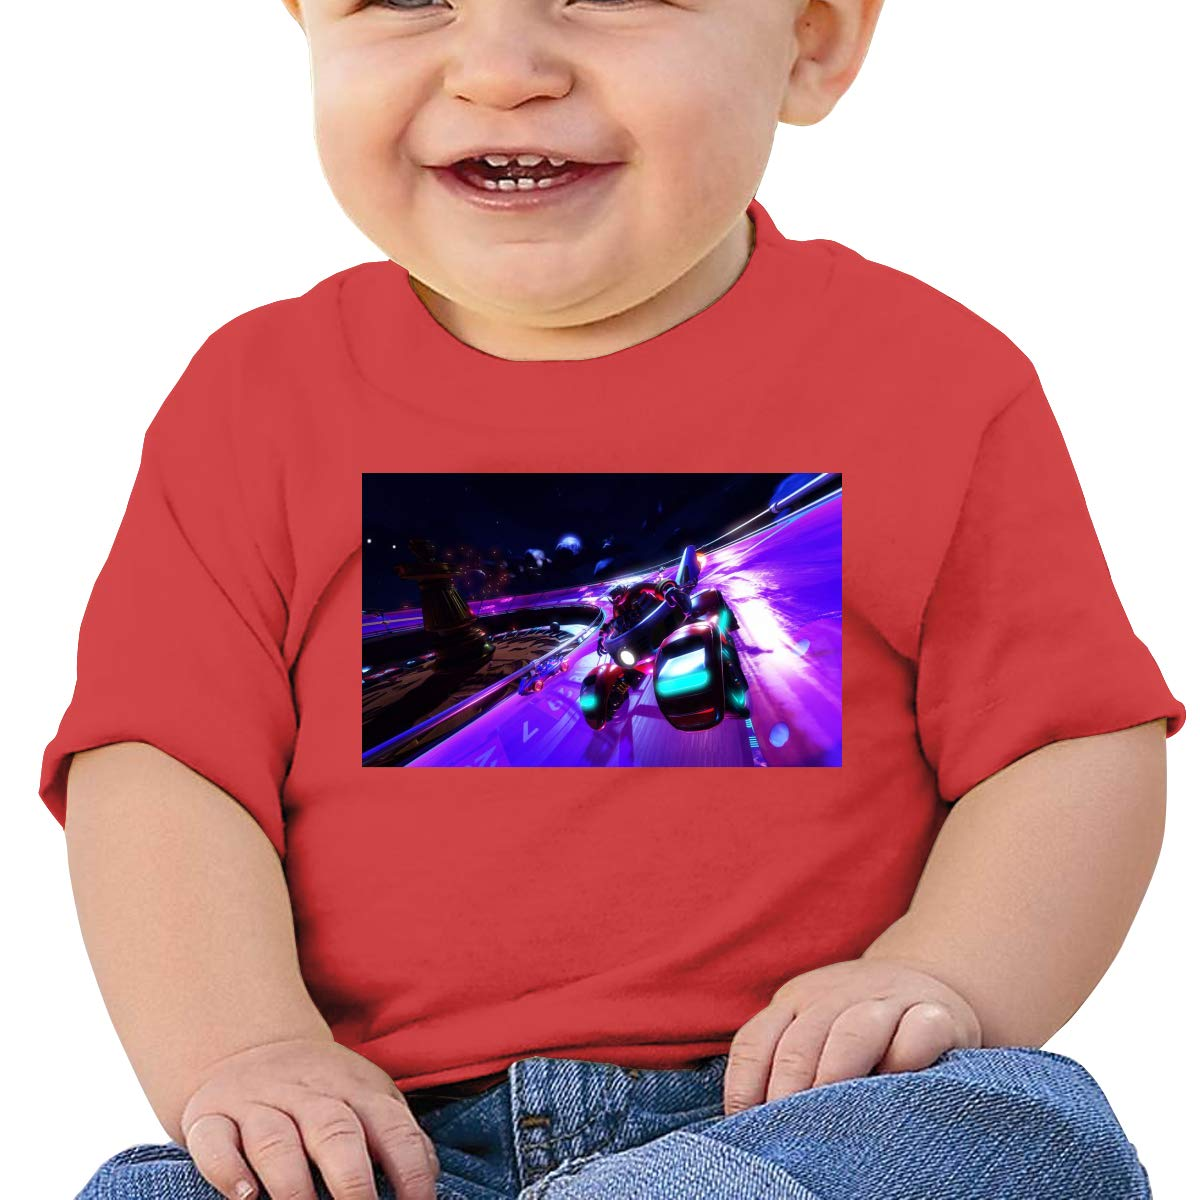 FHTD All Stars Racing Infant Graphic T-Shirt Baby Cartoon Cotton Tees Black